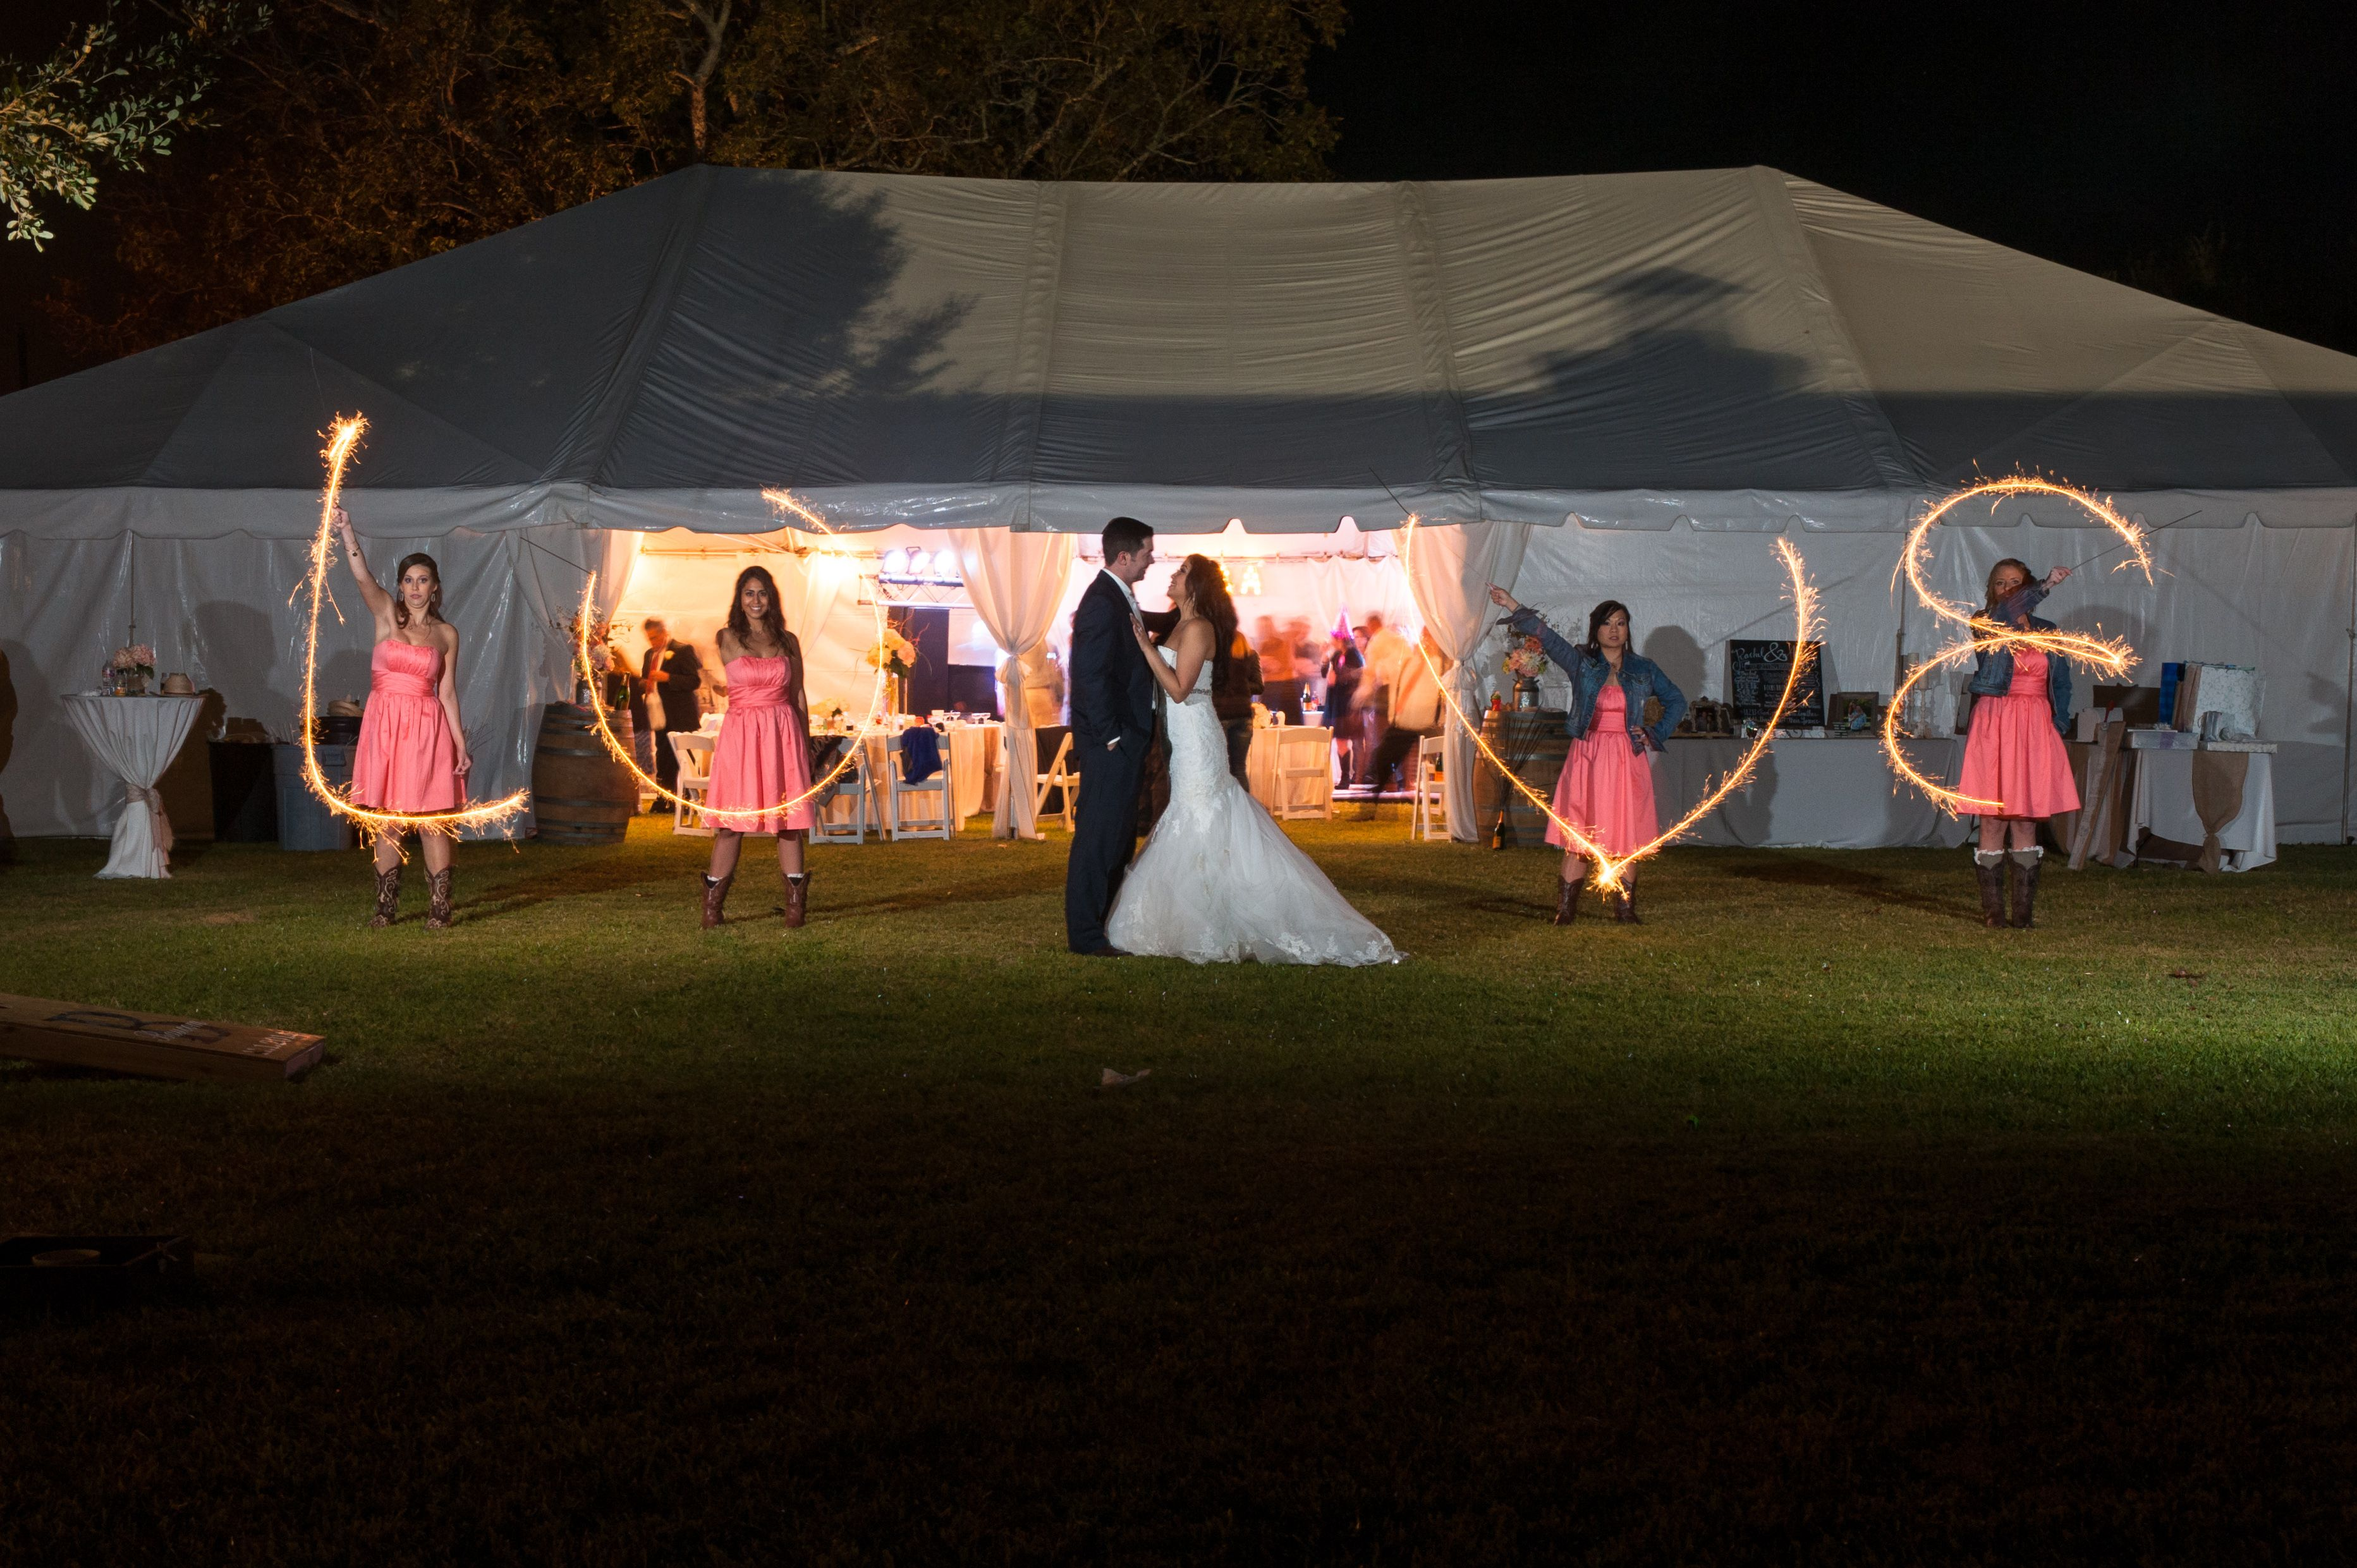 Wedding Tent Package from Avalon Event Rentals. Picture by Chris Curry Wedding Photography. & Wedding Tent Package from Avalon Event Rentals. Picture by Chris ...